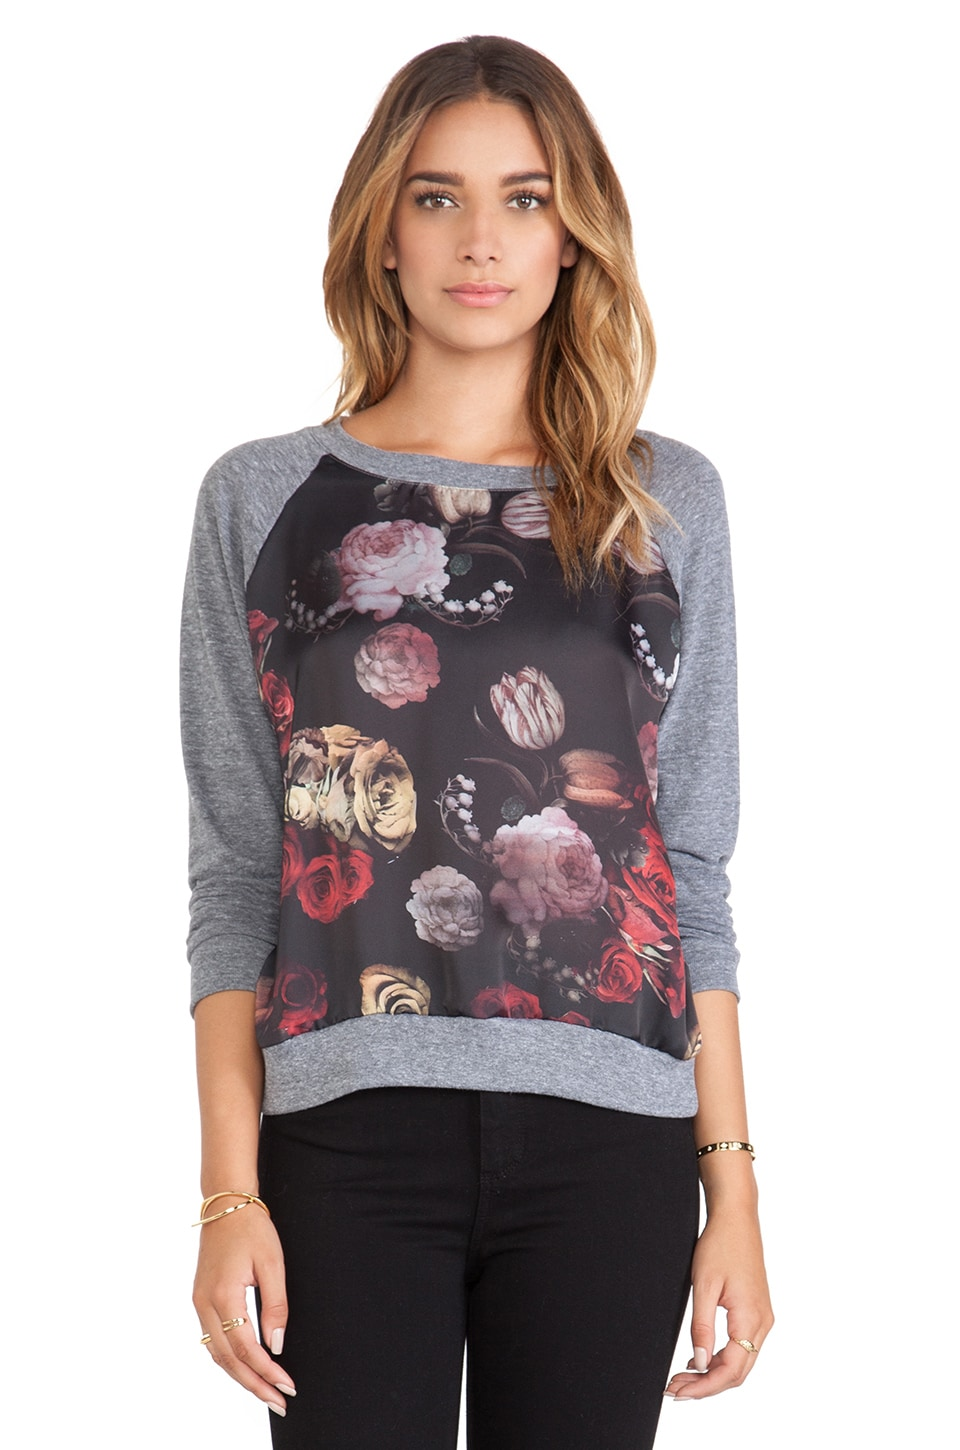 Nation LTD Raglan Sweatshirt in Romantic Floral & Heather Grey